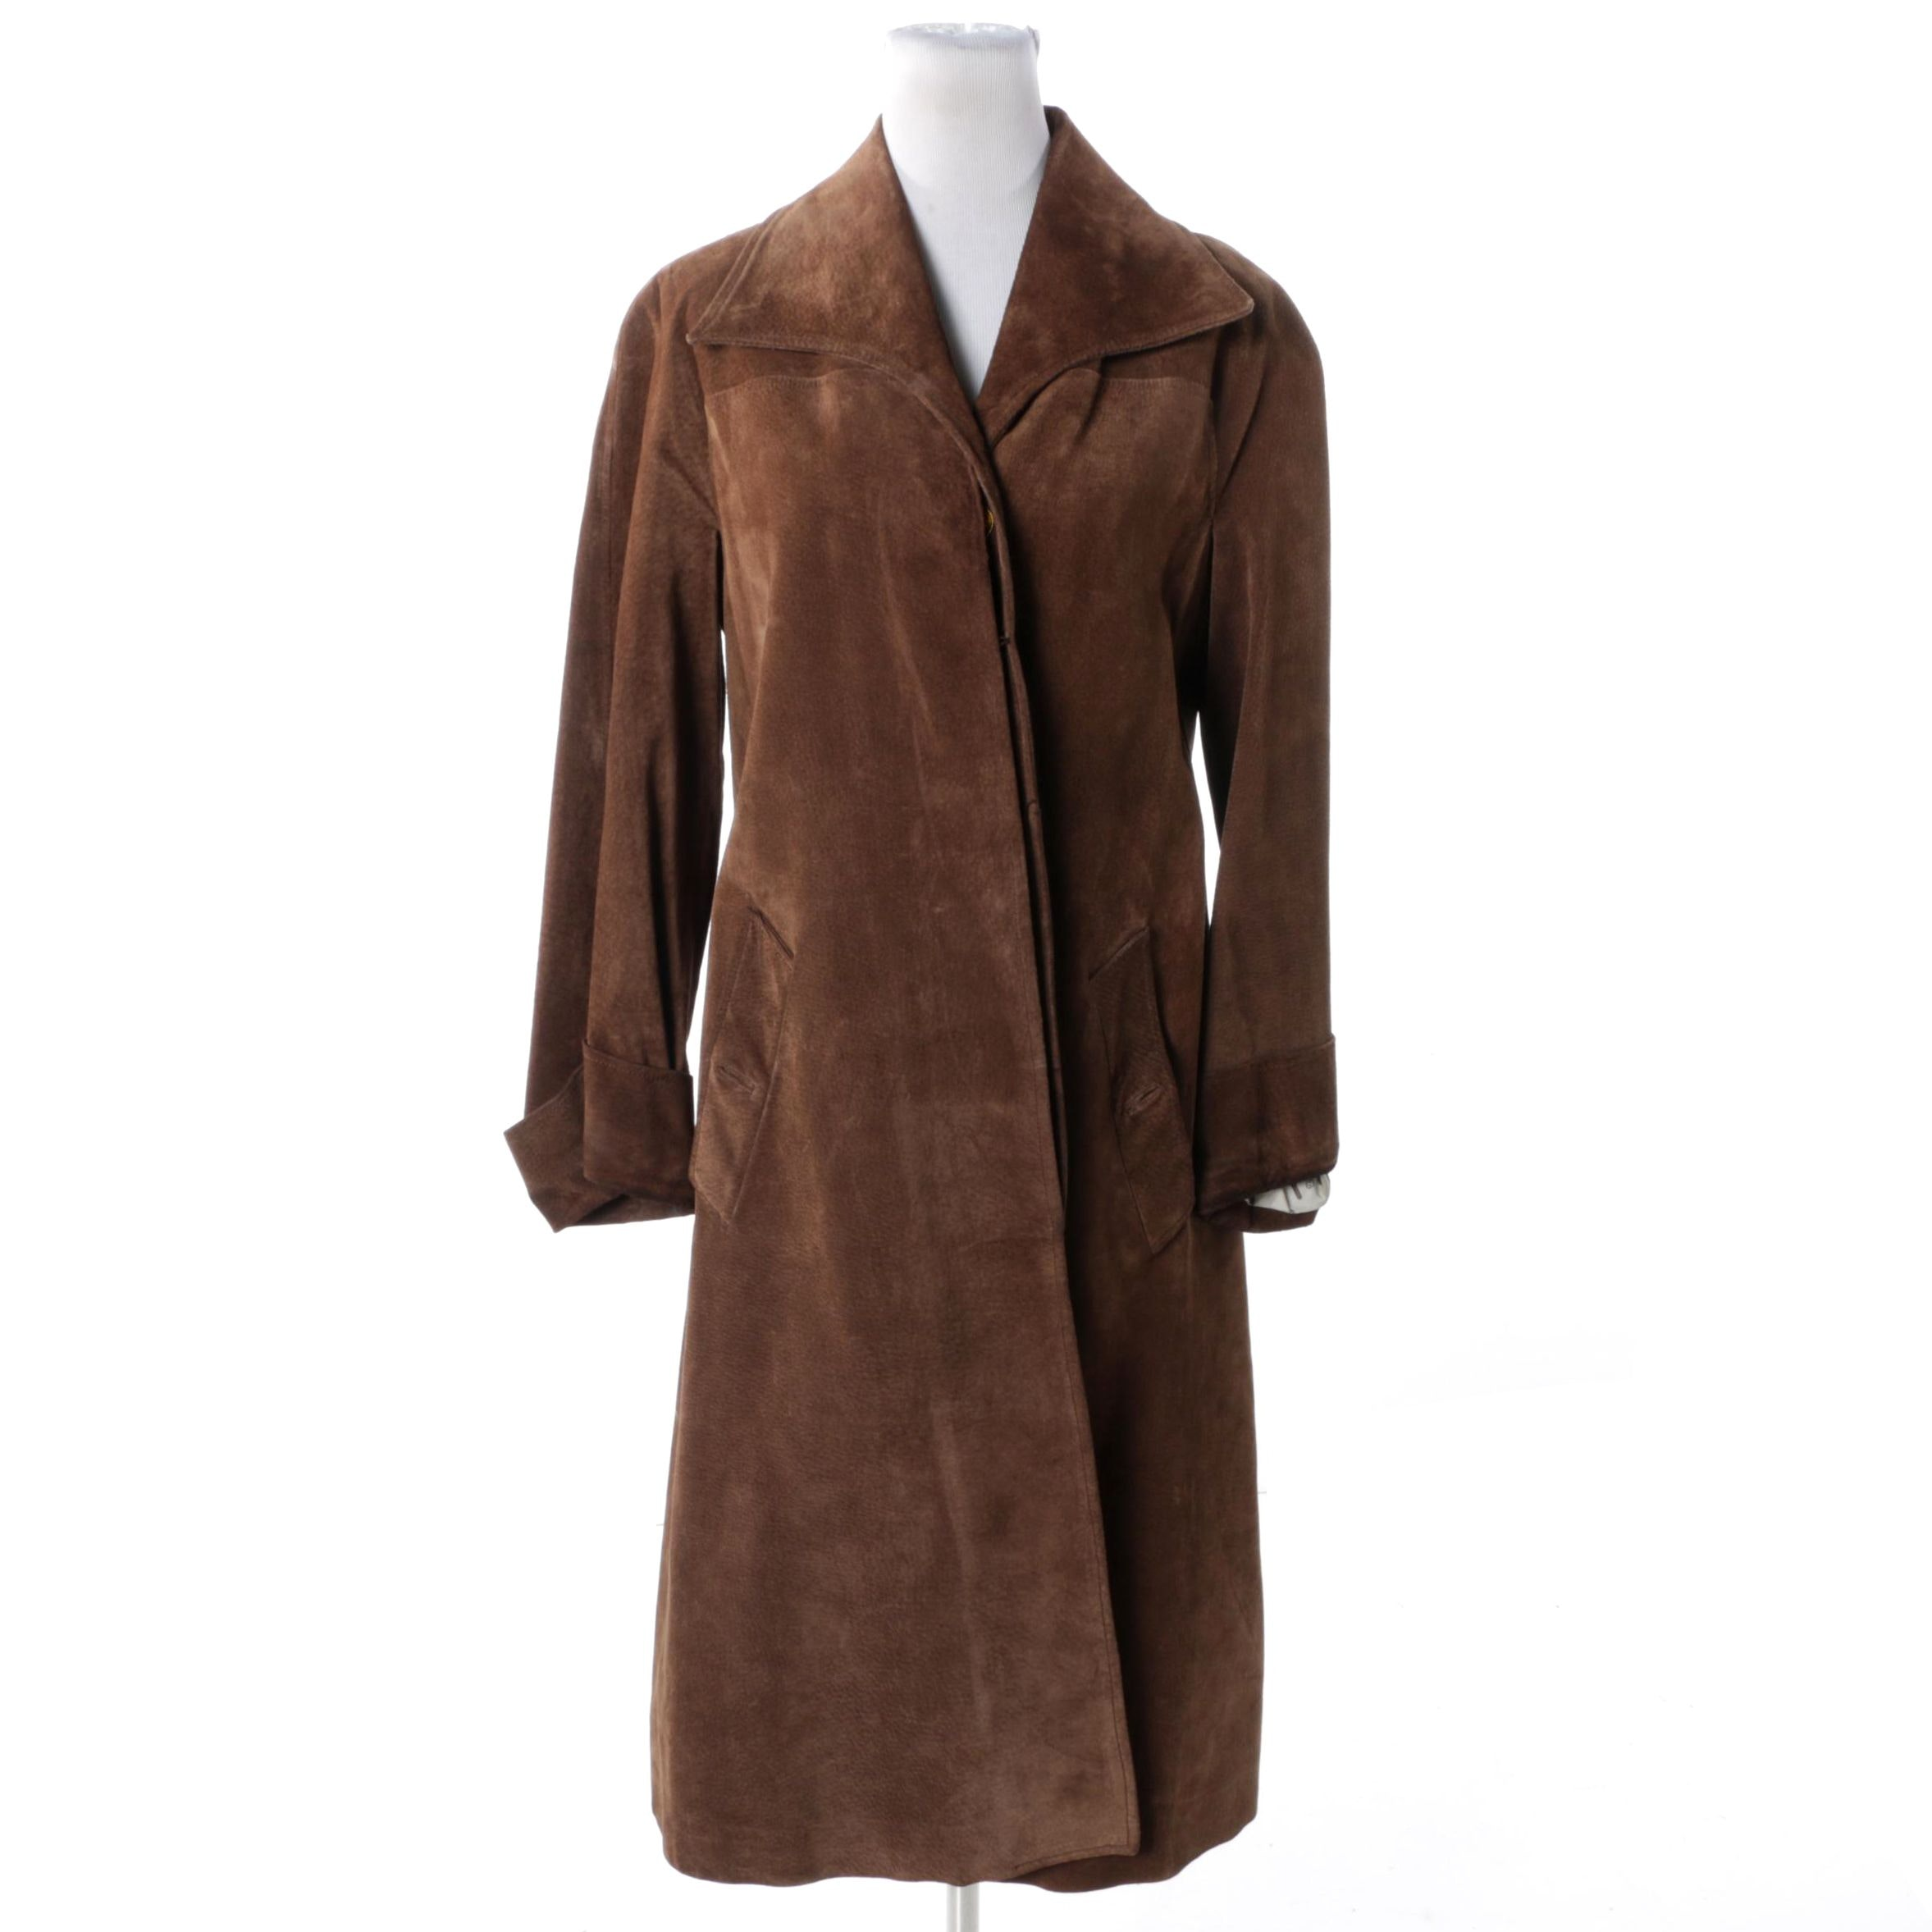 Women's Circa 1970s Gucci Brown Suede Coat